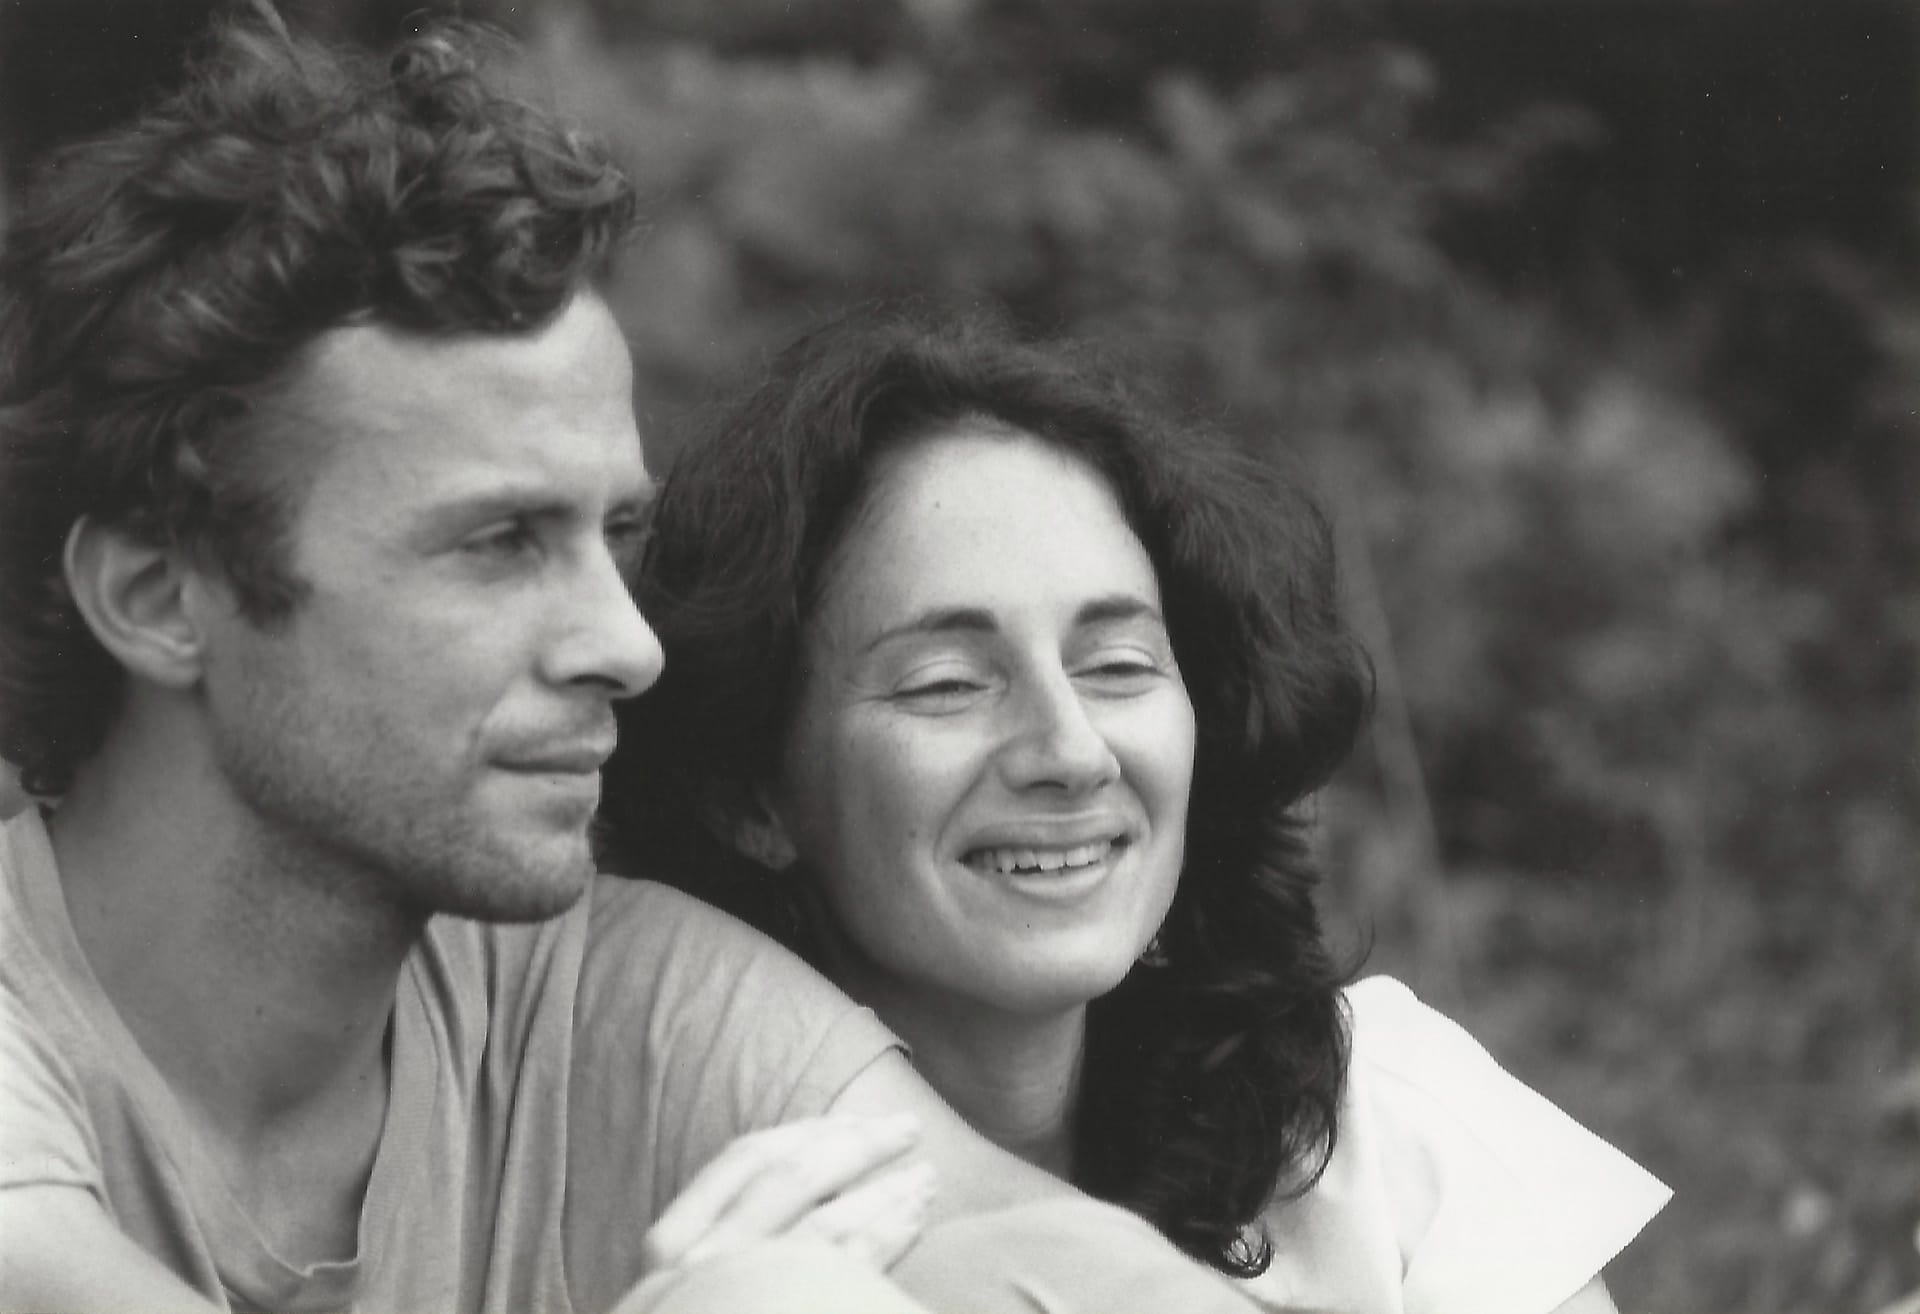 Peter and Marcie Maynard